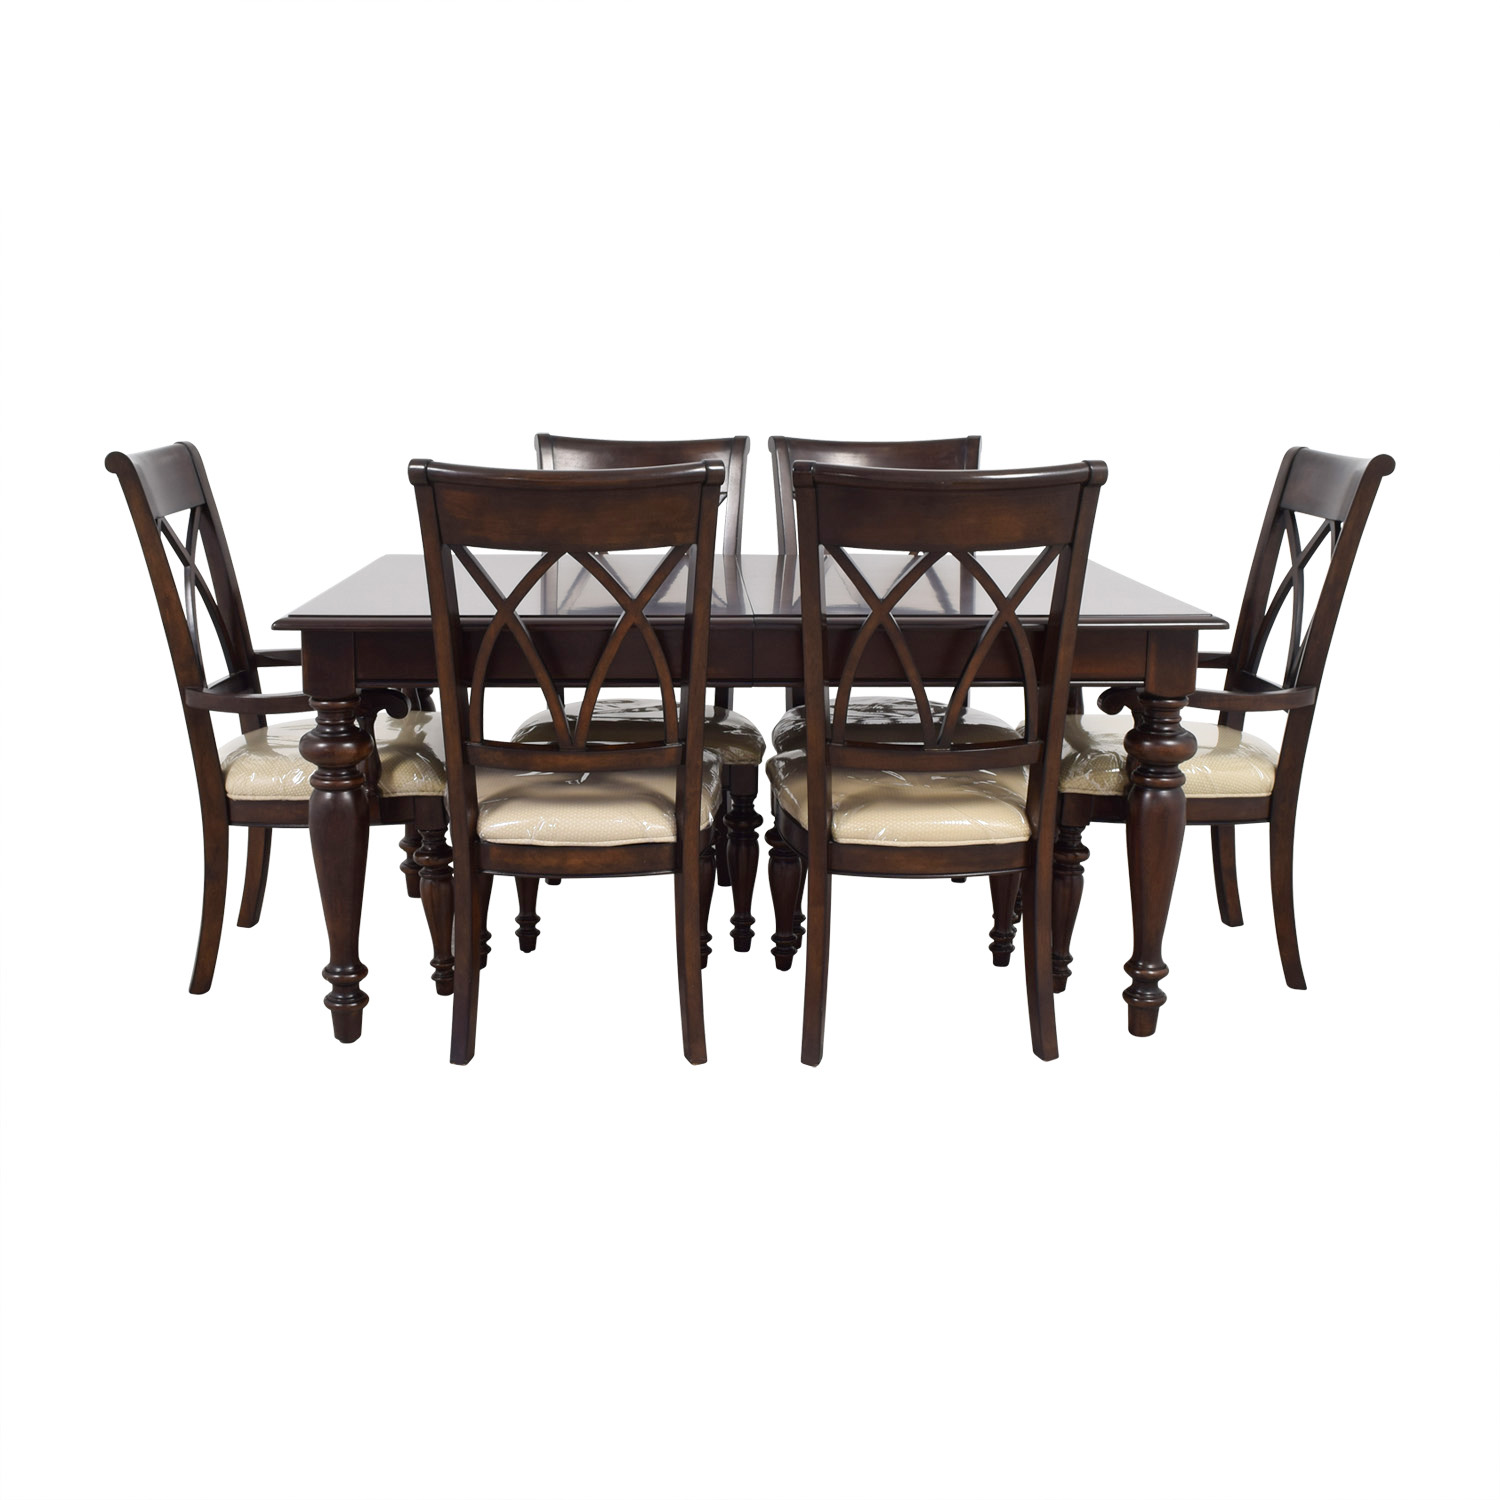 Macys Wood Dining Set with Beige Upholstery sale